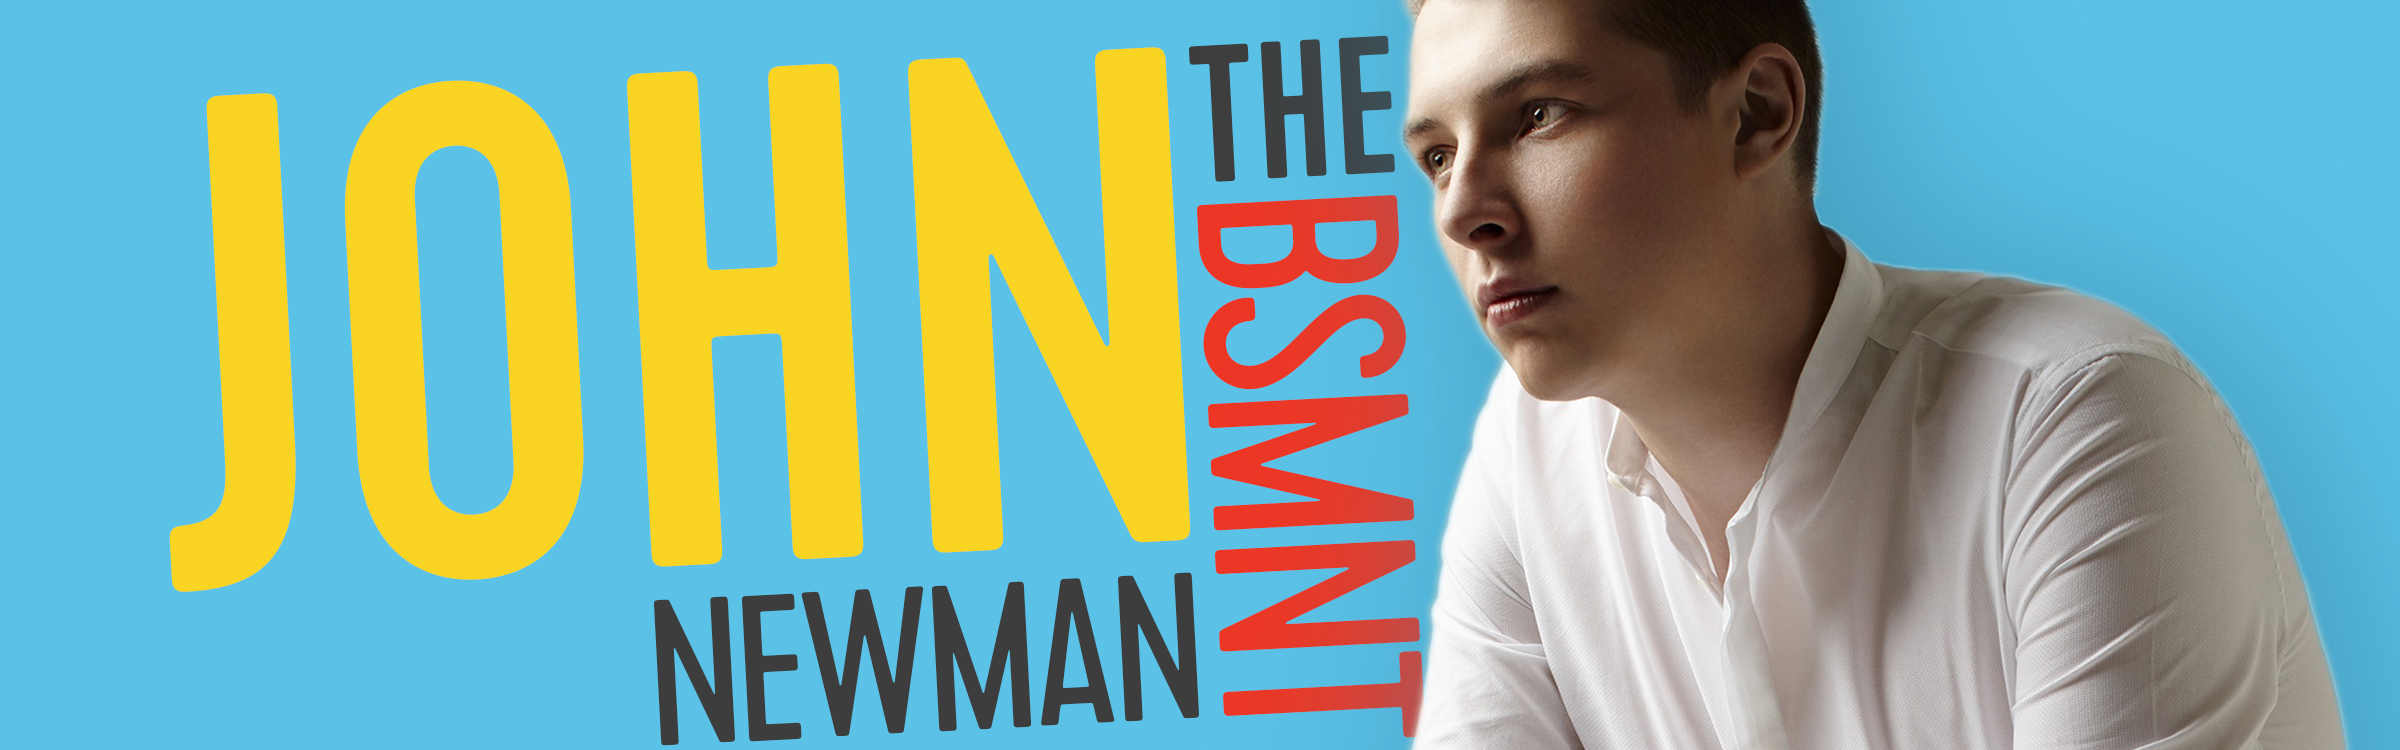 Q 2400x750 thebsmnt johnnewman